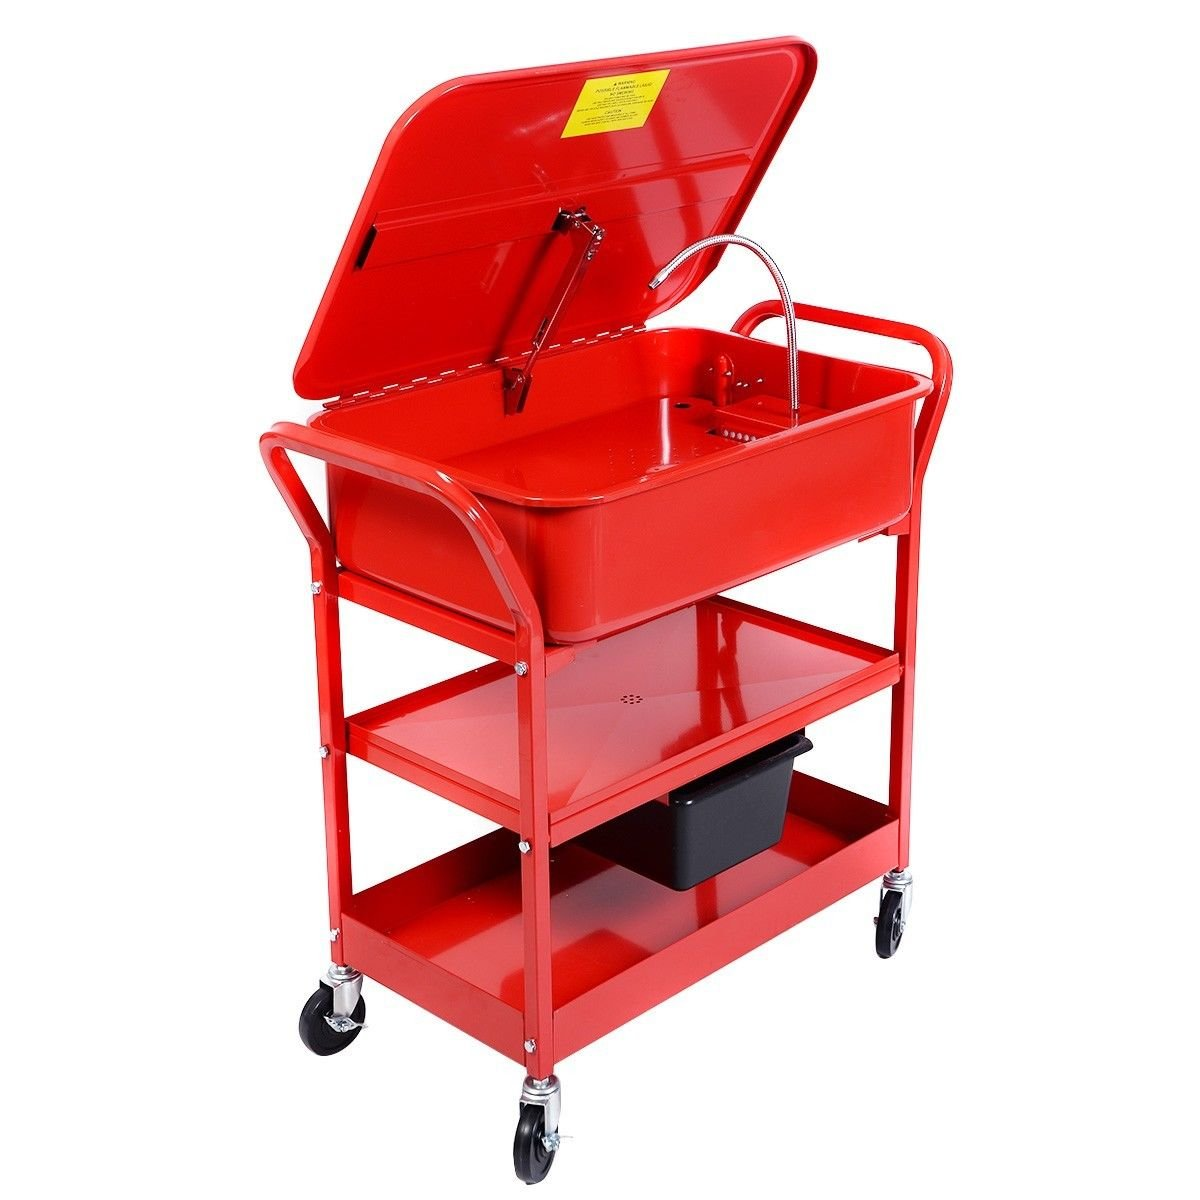 Globe House Products GHP 20-Gallon Max Tank Cacpacity 5.28GPM Flow Rate Red Mobile Parts Washer Cart by Globe House Products (Image #1)